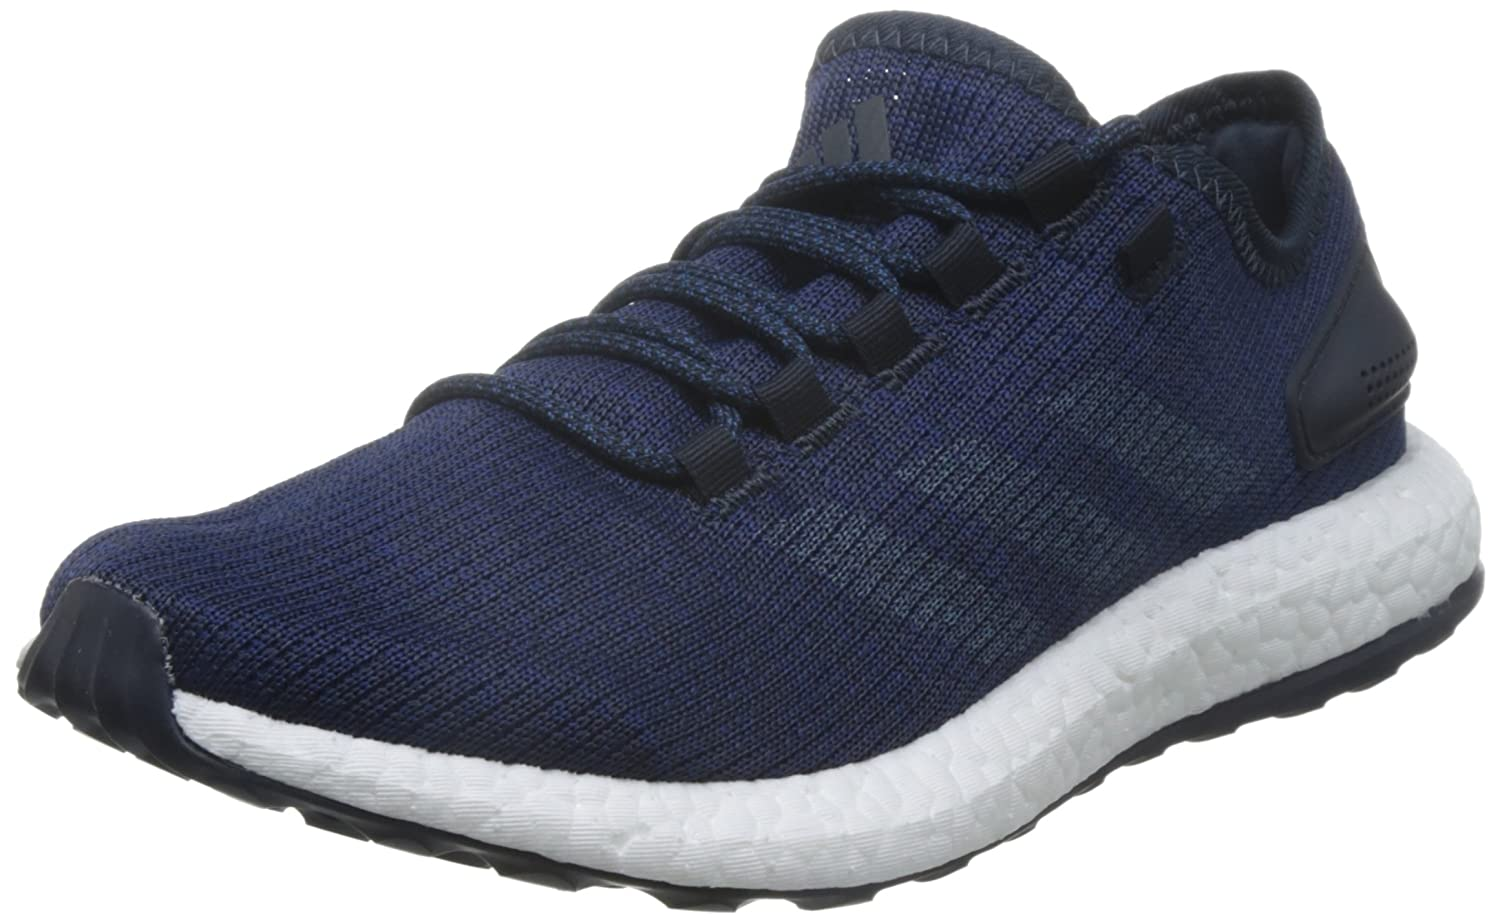 5e2511ce858d9 adidas Men s Pure Boost Running Shoes  Amazon.co.uk  Shoes   Bags